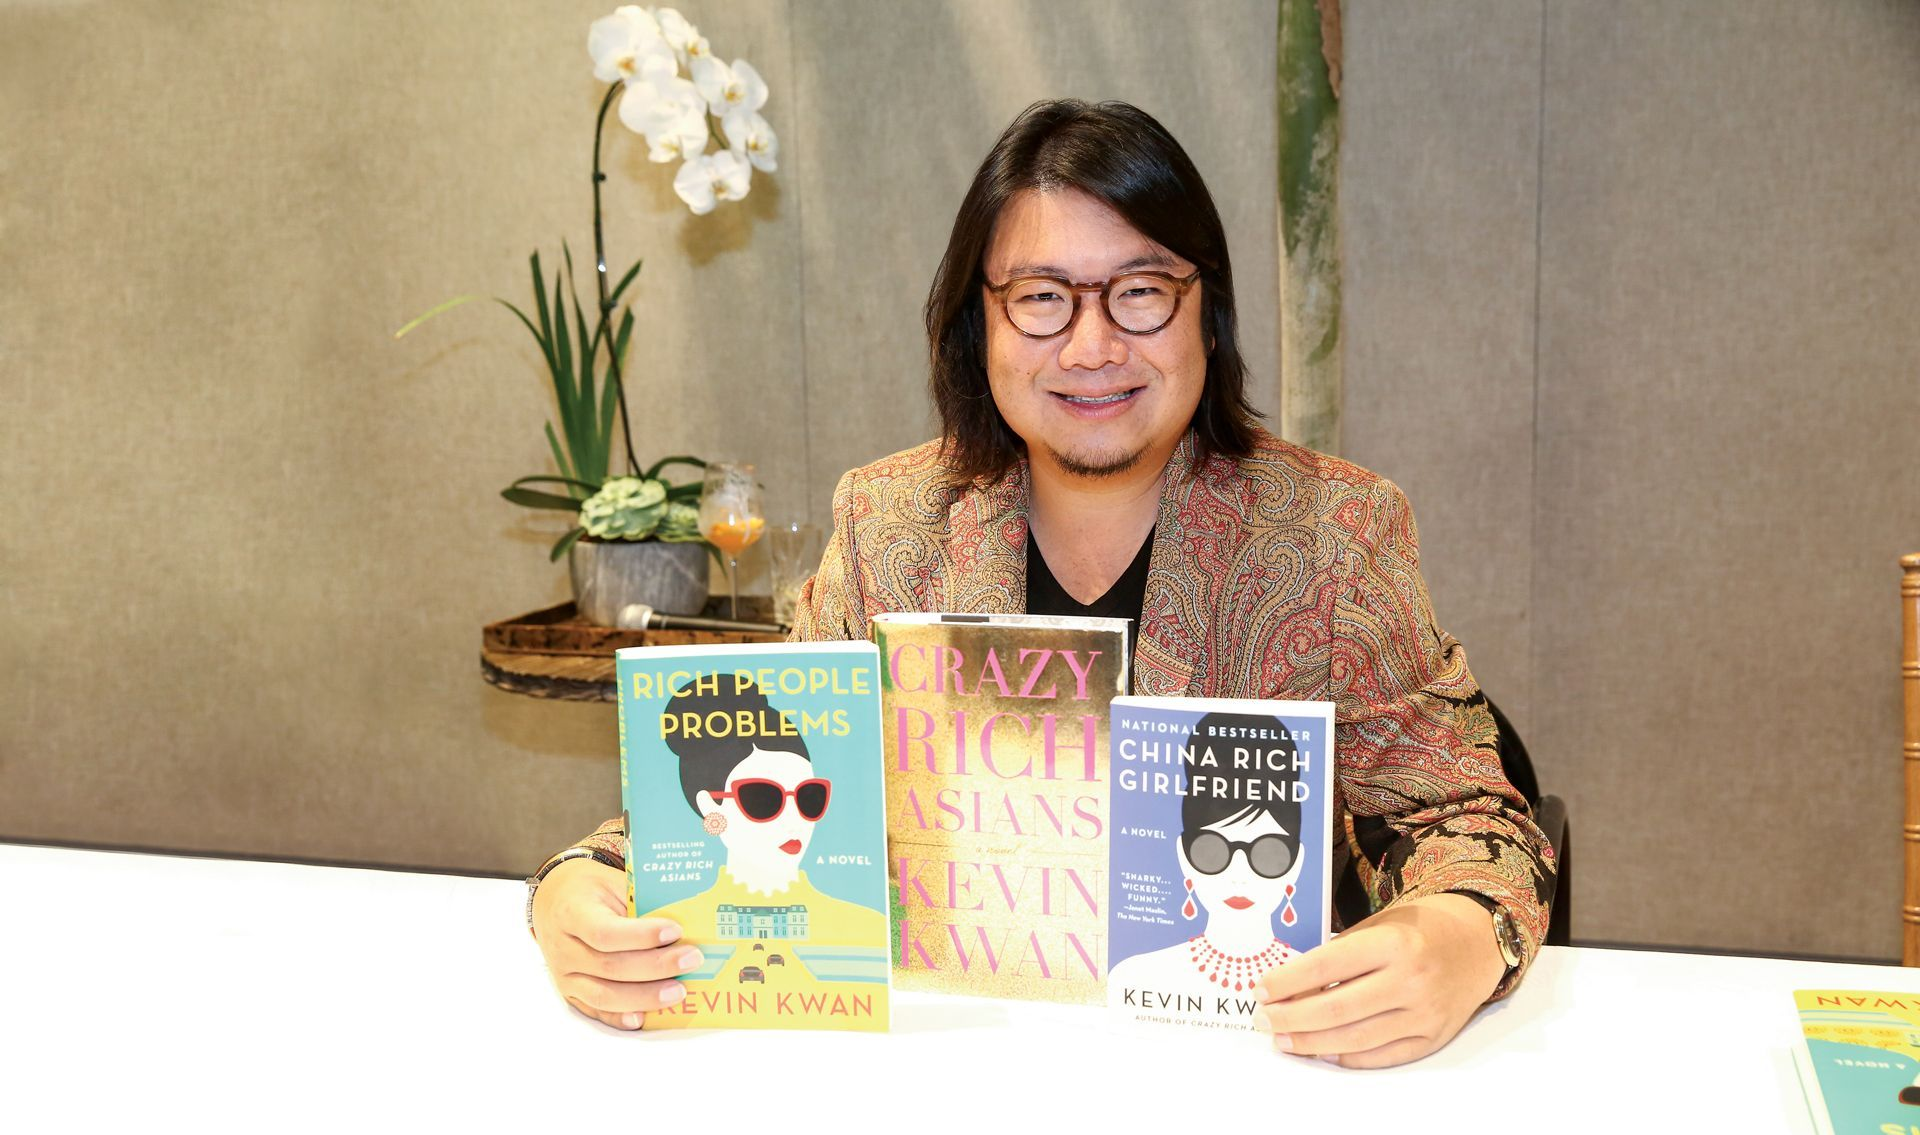 Crazy Rich Asians Author Kevin Kwan In Conversation With Tatler Philippines